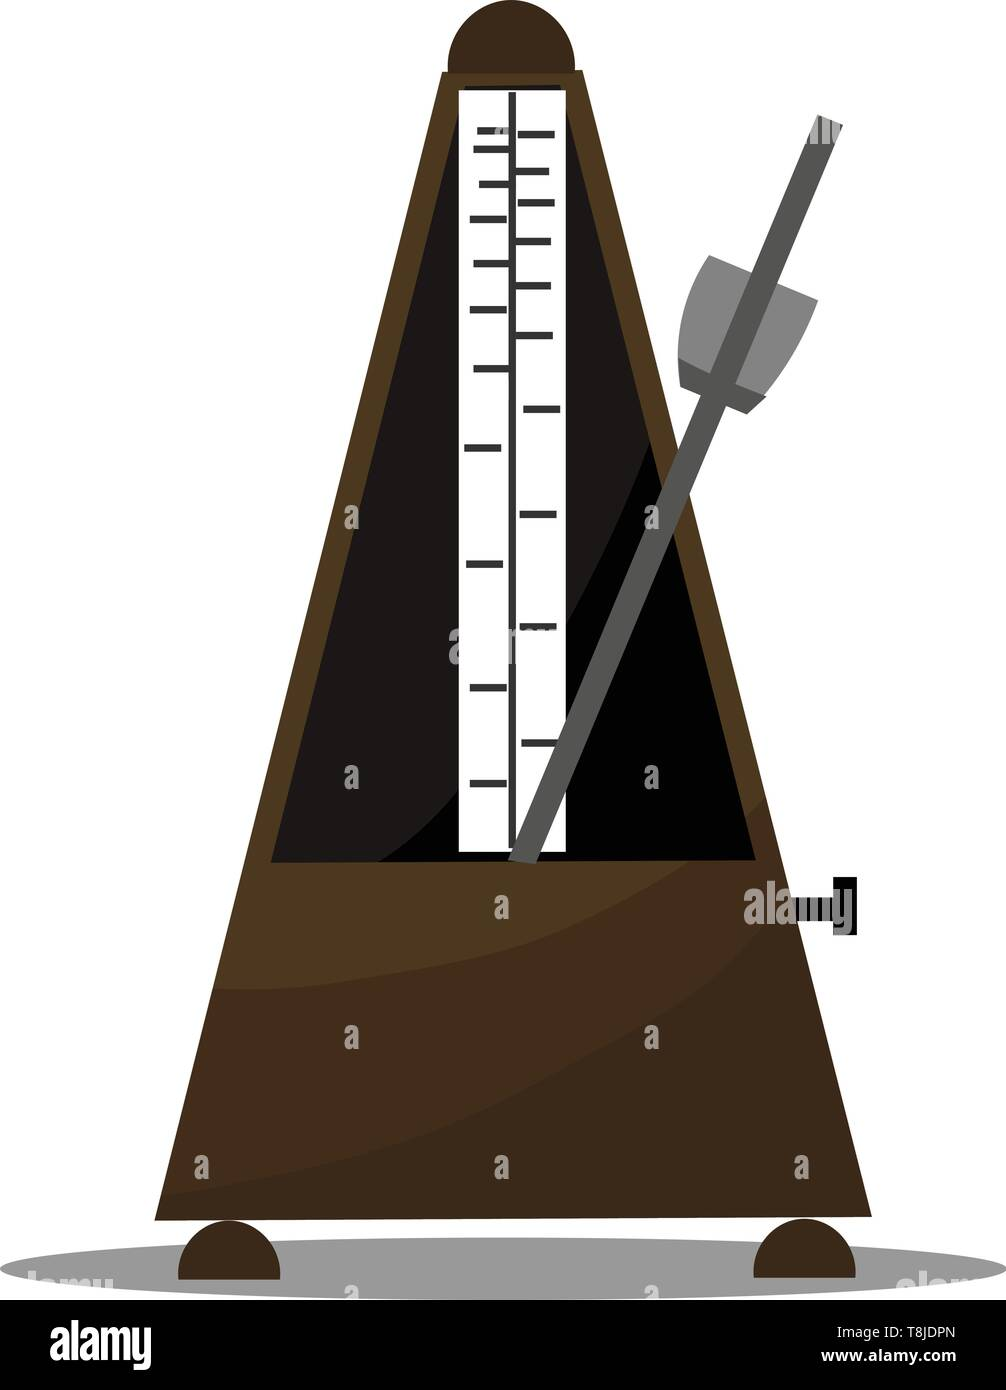 A metronome device that produces sound at regular interval that can be set by the user in beats per minutes, vector, color drawing or illustration. - Stock Image